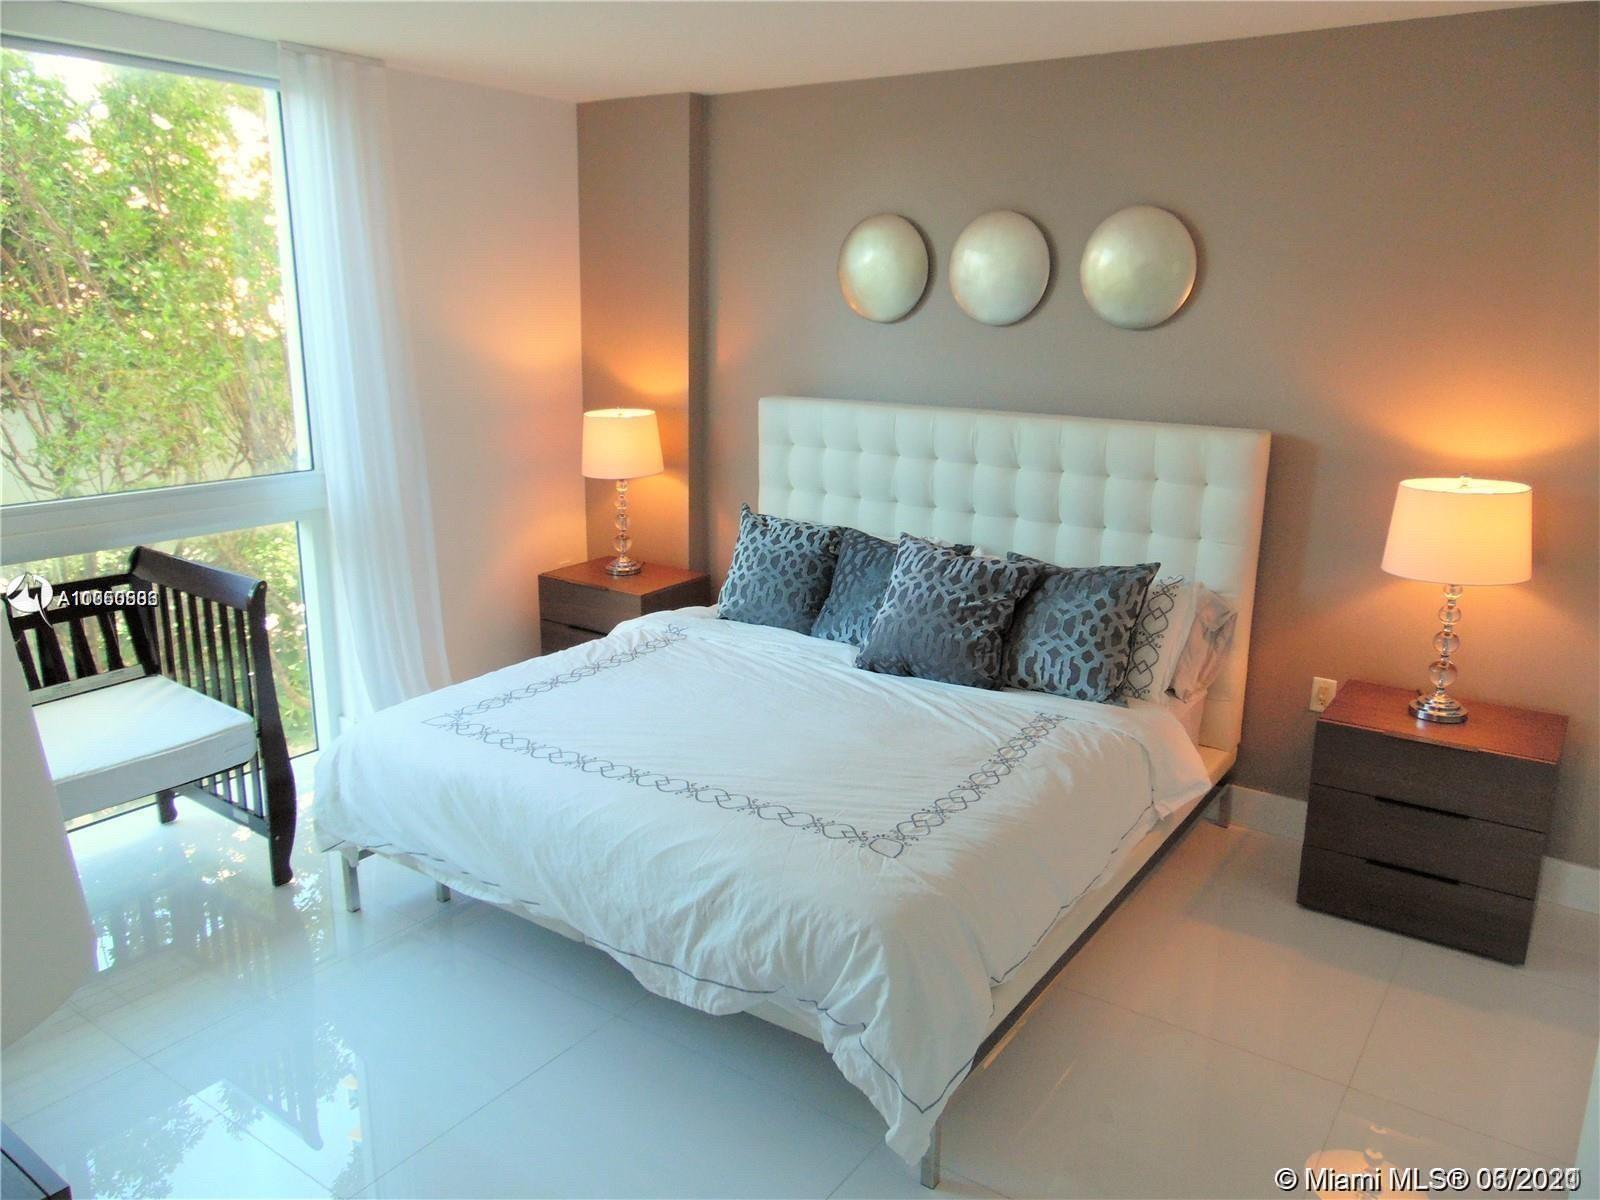 Gorgeous 3 Bed in tower 2 of St-Tropez on the bay. Enjoy this huge floor plan with a large master su